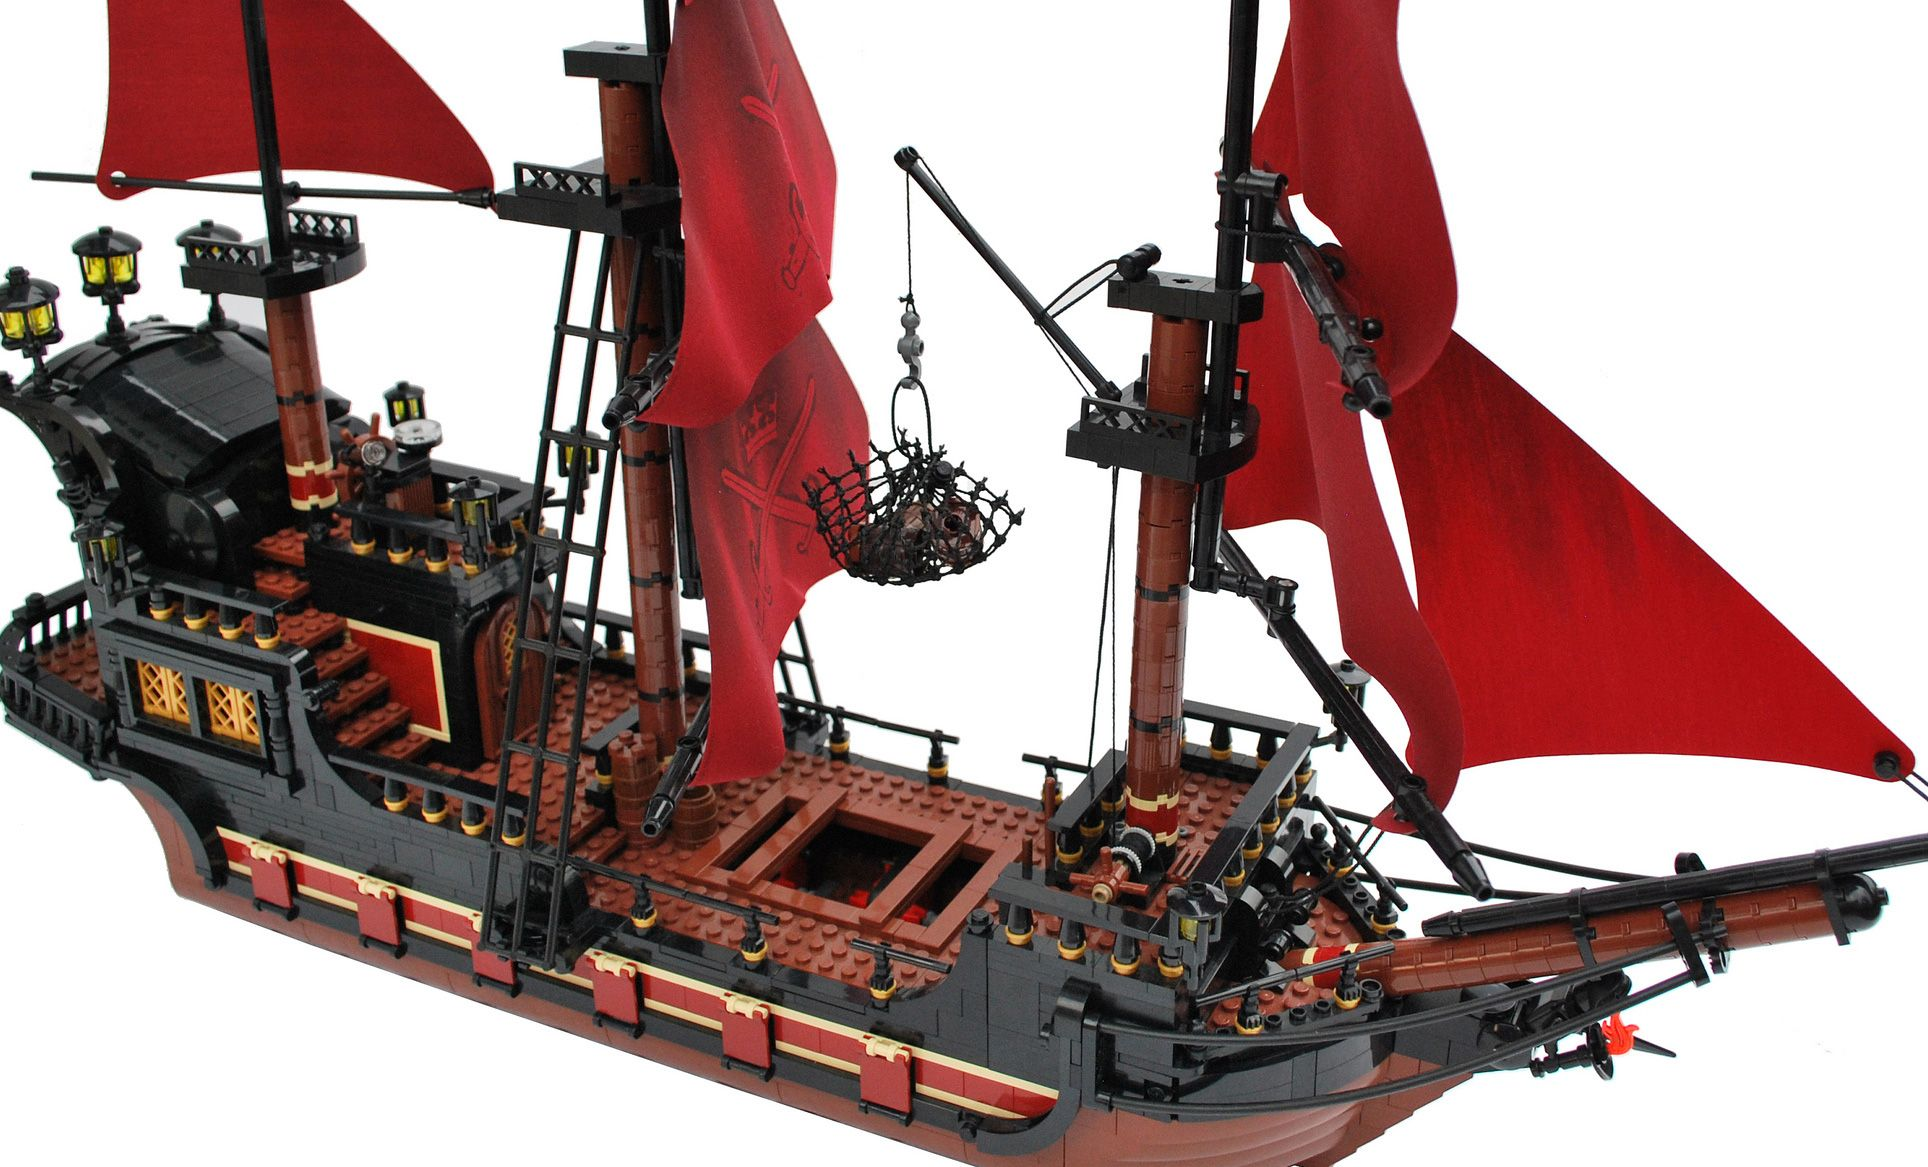 lego pirate ship lego lego lego lego pinterest lego. Black Bedroom Furniture Sets. Home Design Ideas